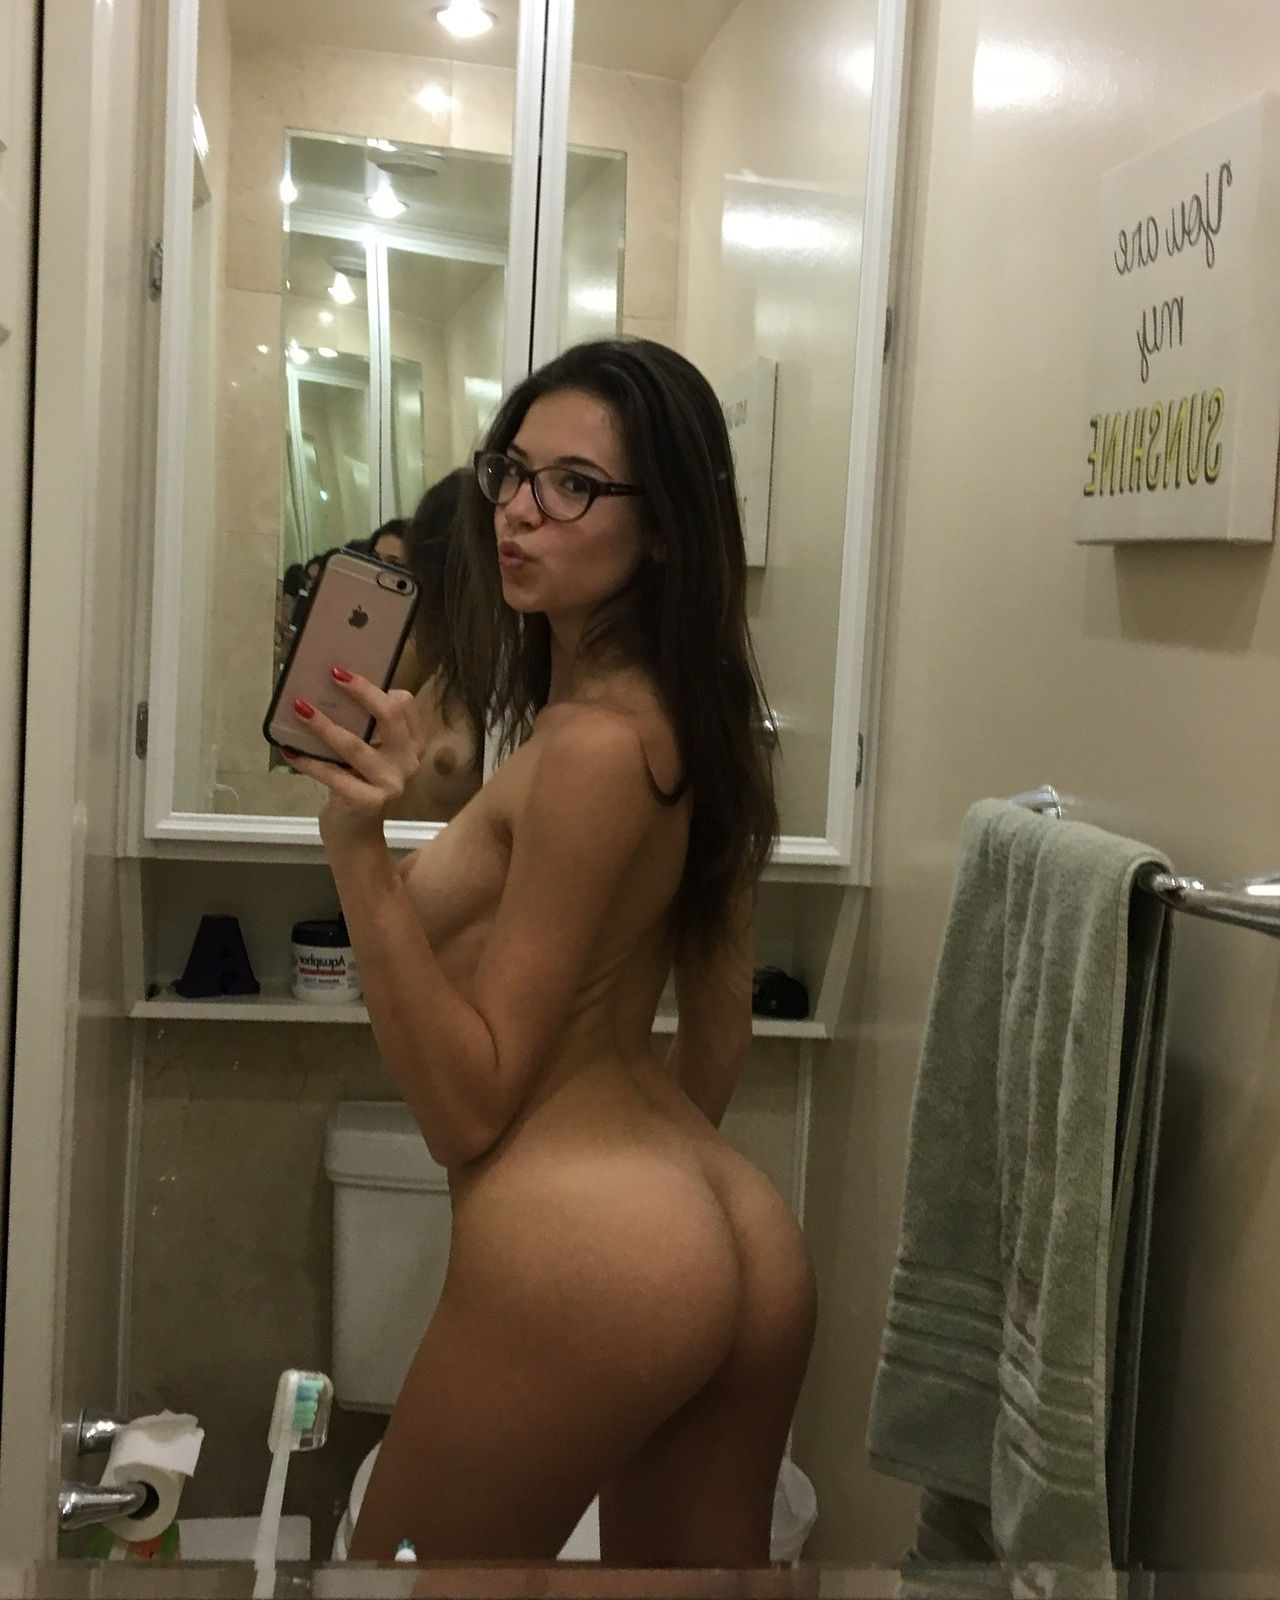 Horny Slut Jennifer Takes Topless Selfie And Bares Ass In Thing For Self Shot